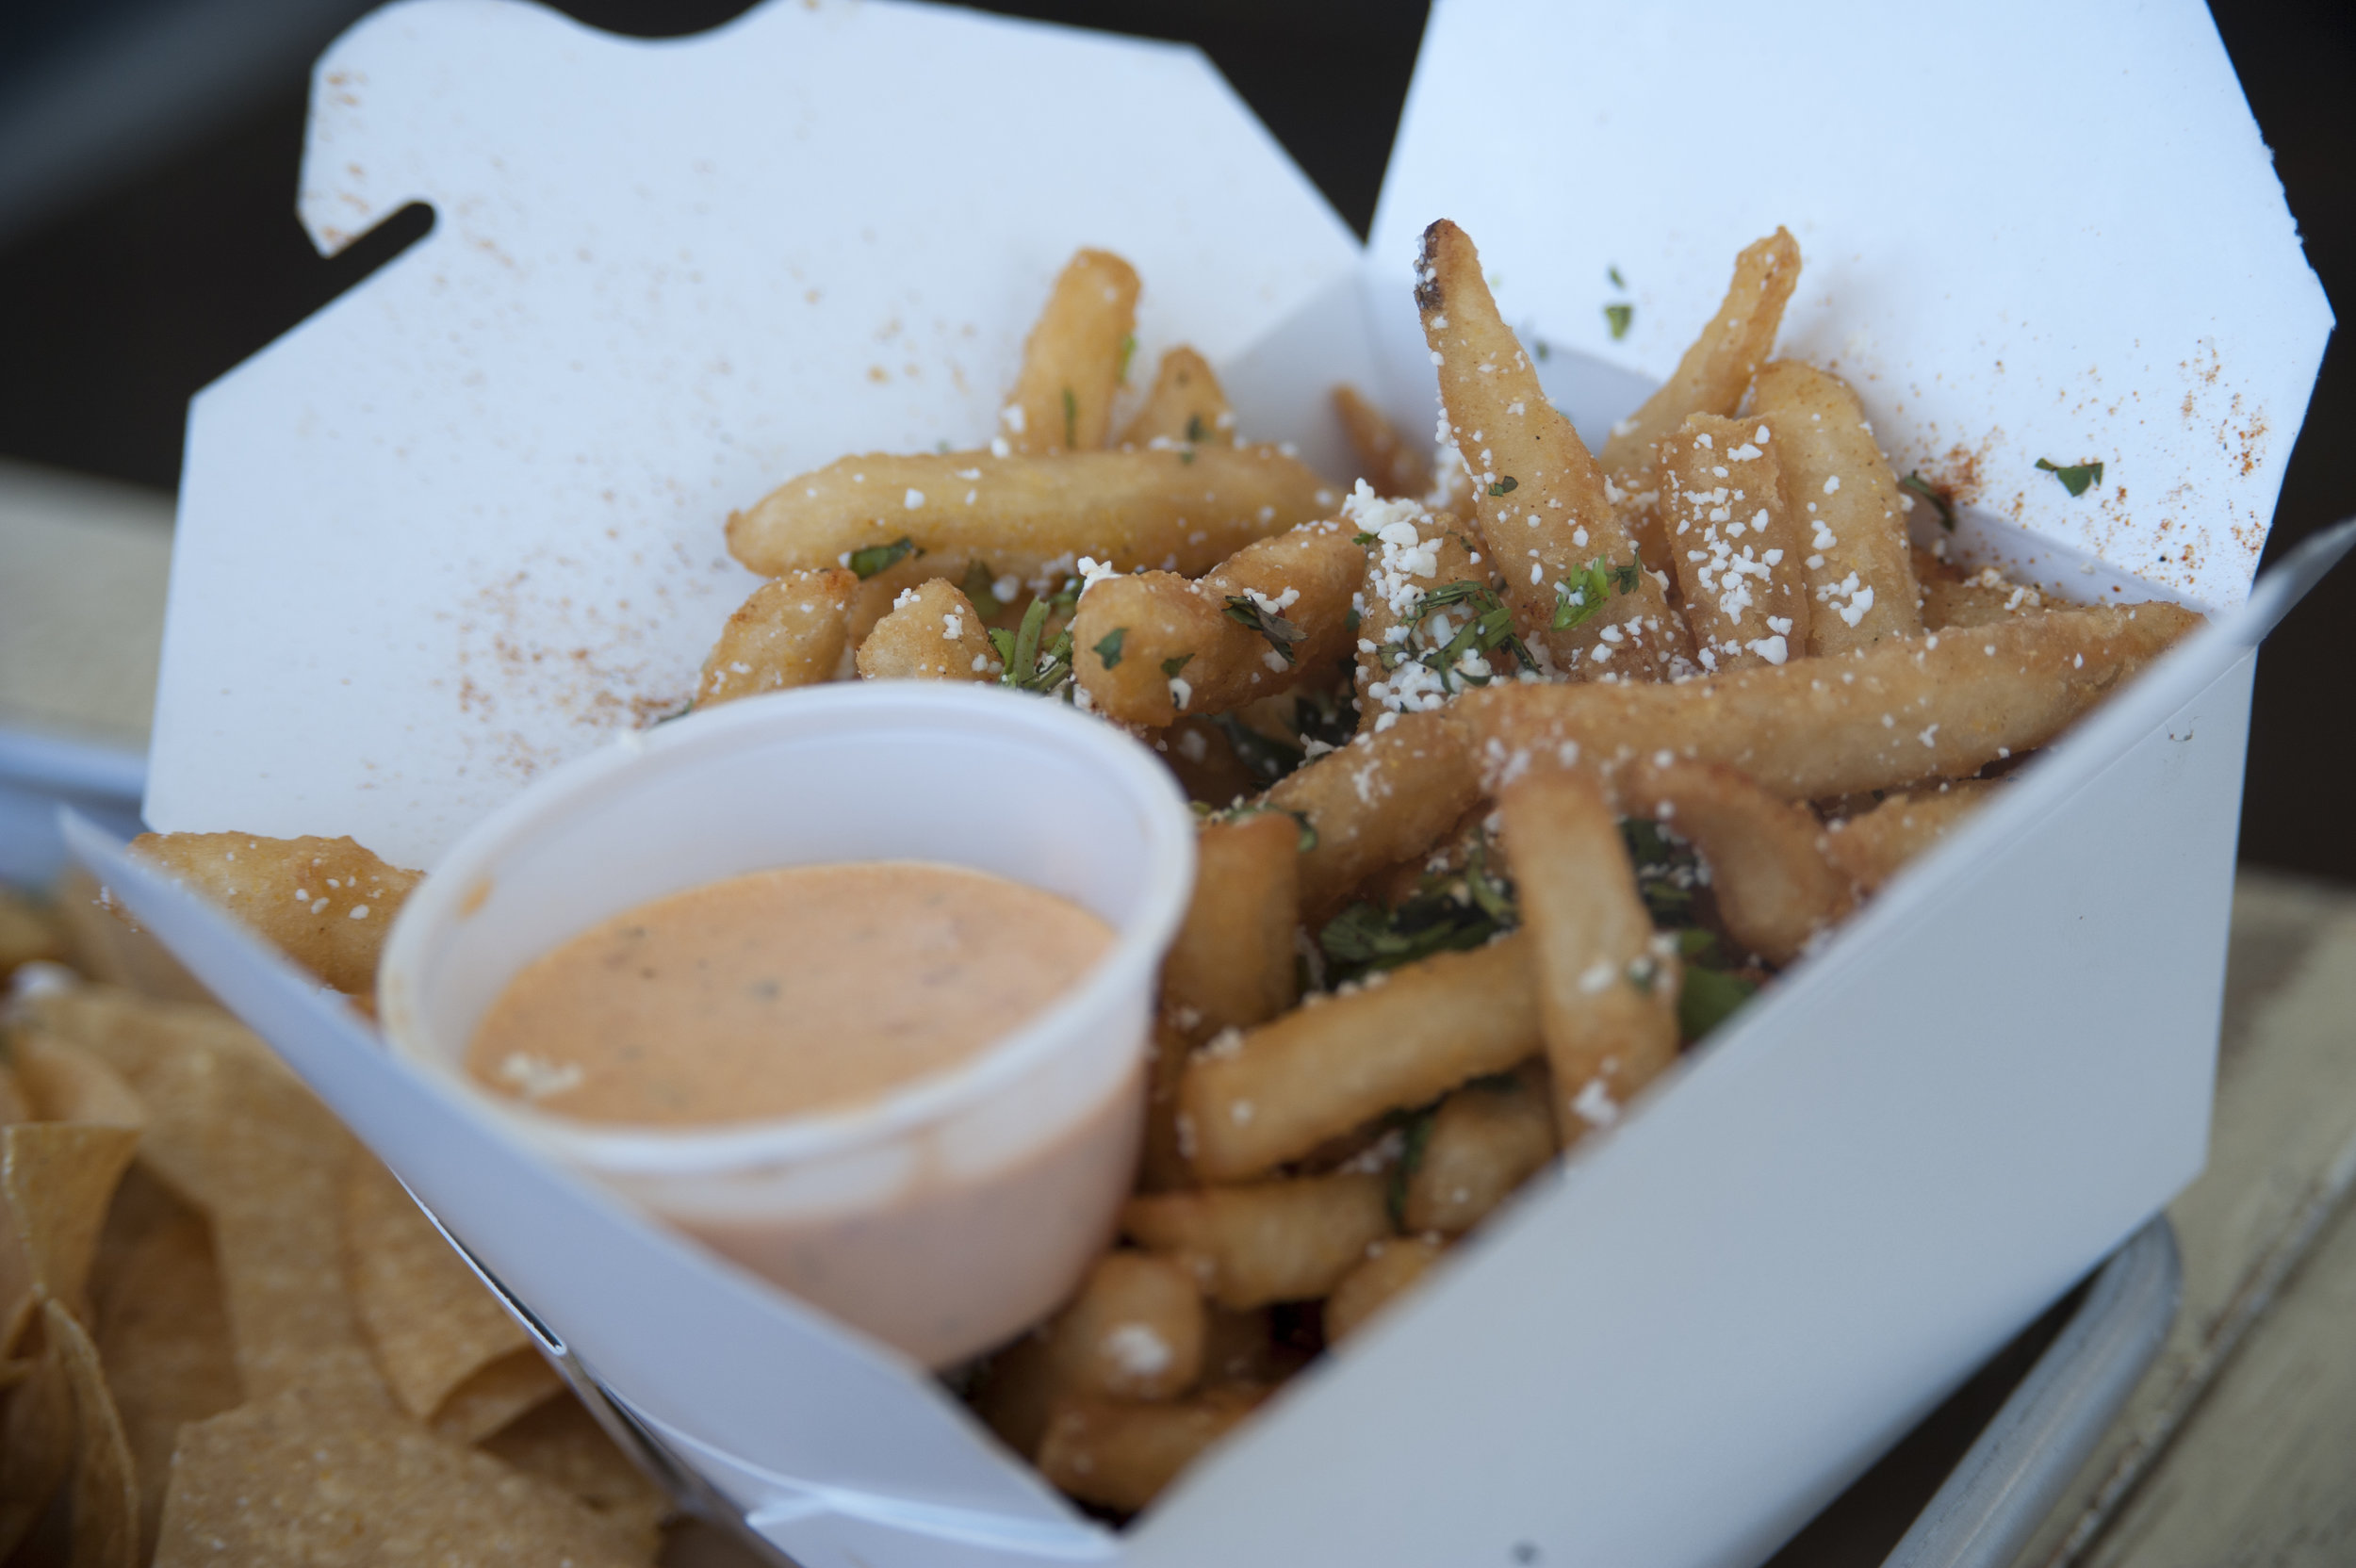 The Street Fries offers crispy fries topped with cotija, sea salt, cilantro and tajin, a Mexican seasoning, alongside the signature Whale Sauce.